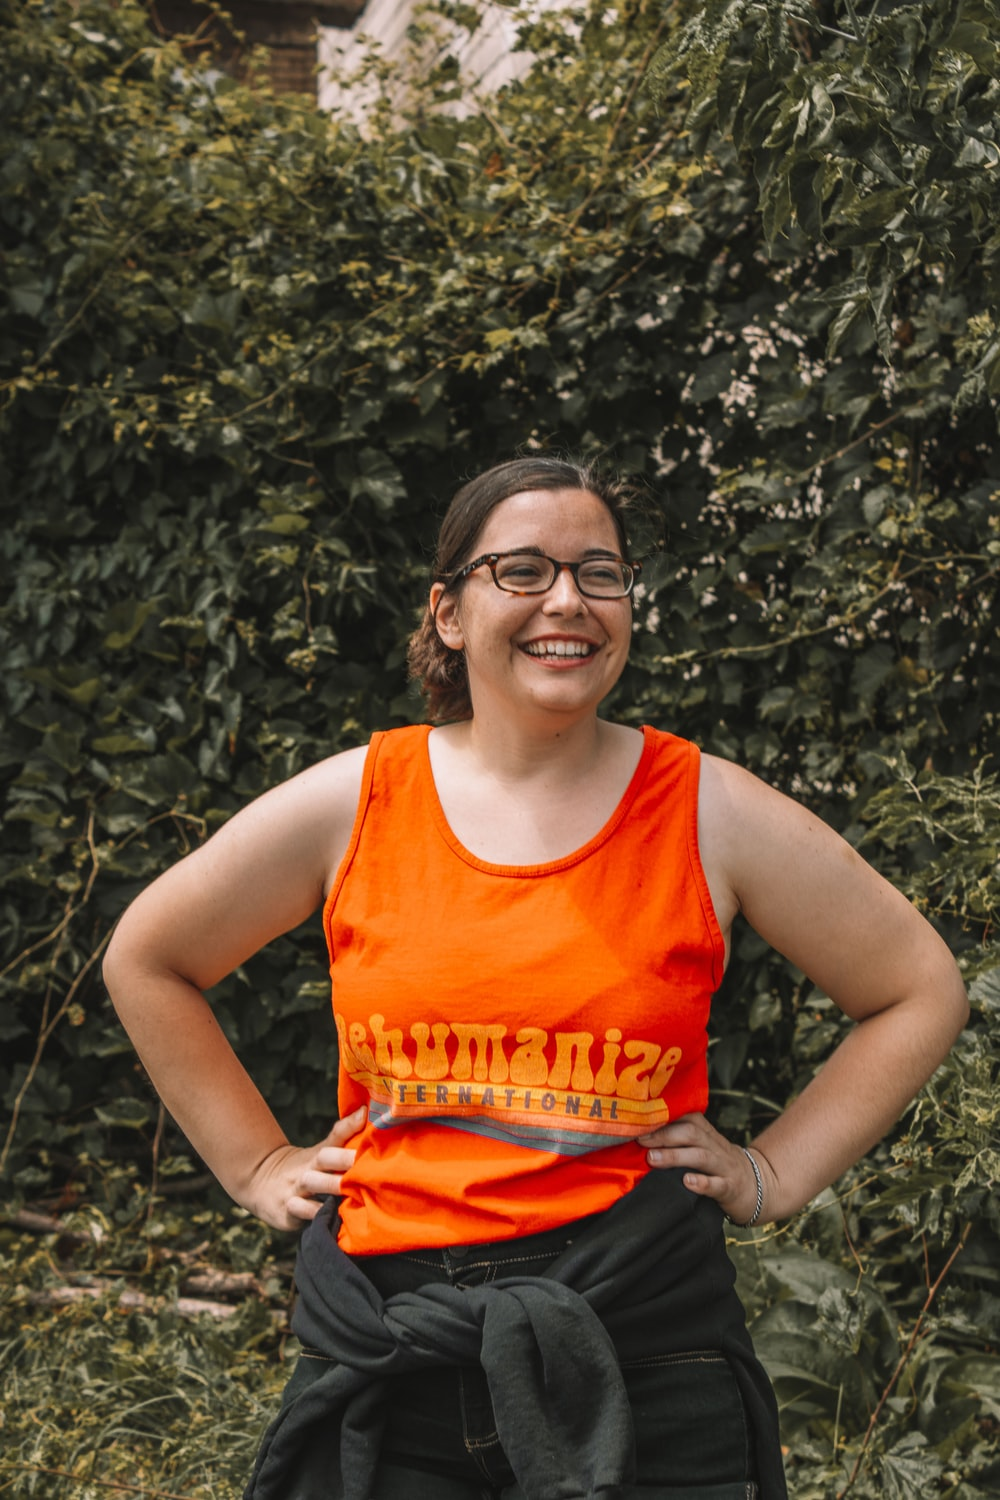 woman in orange tank top and red shorts smiling